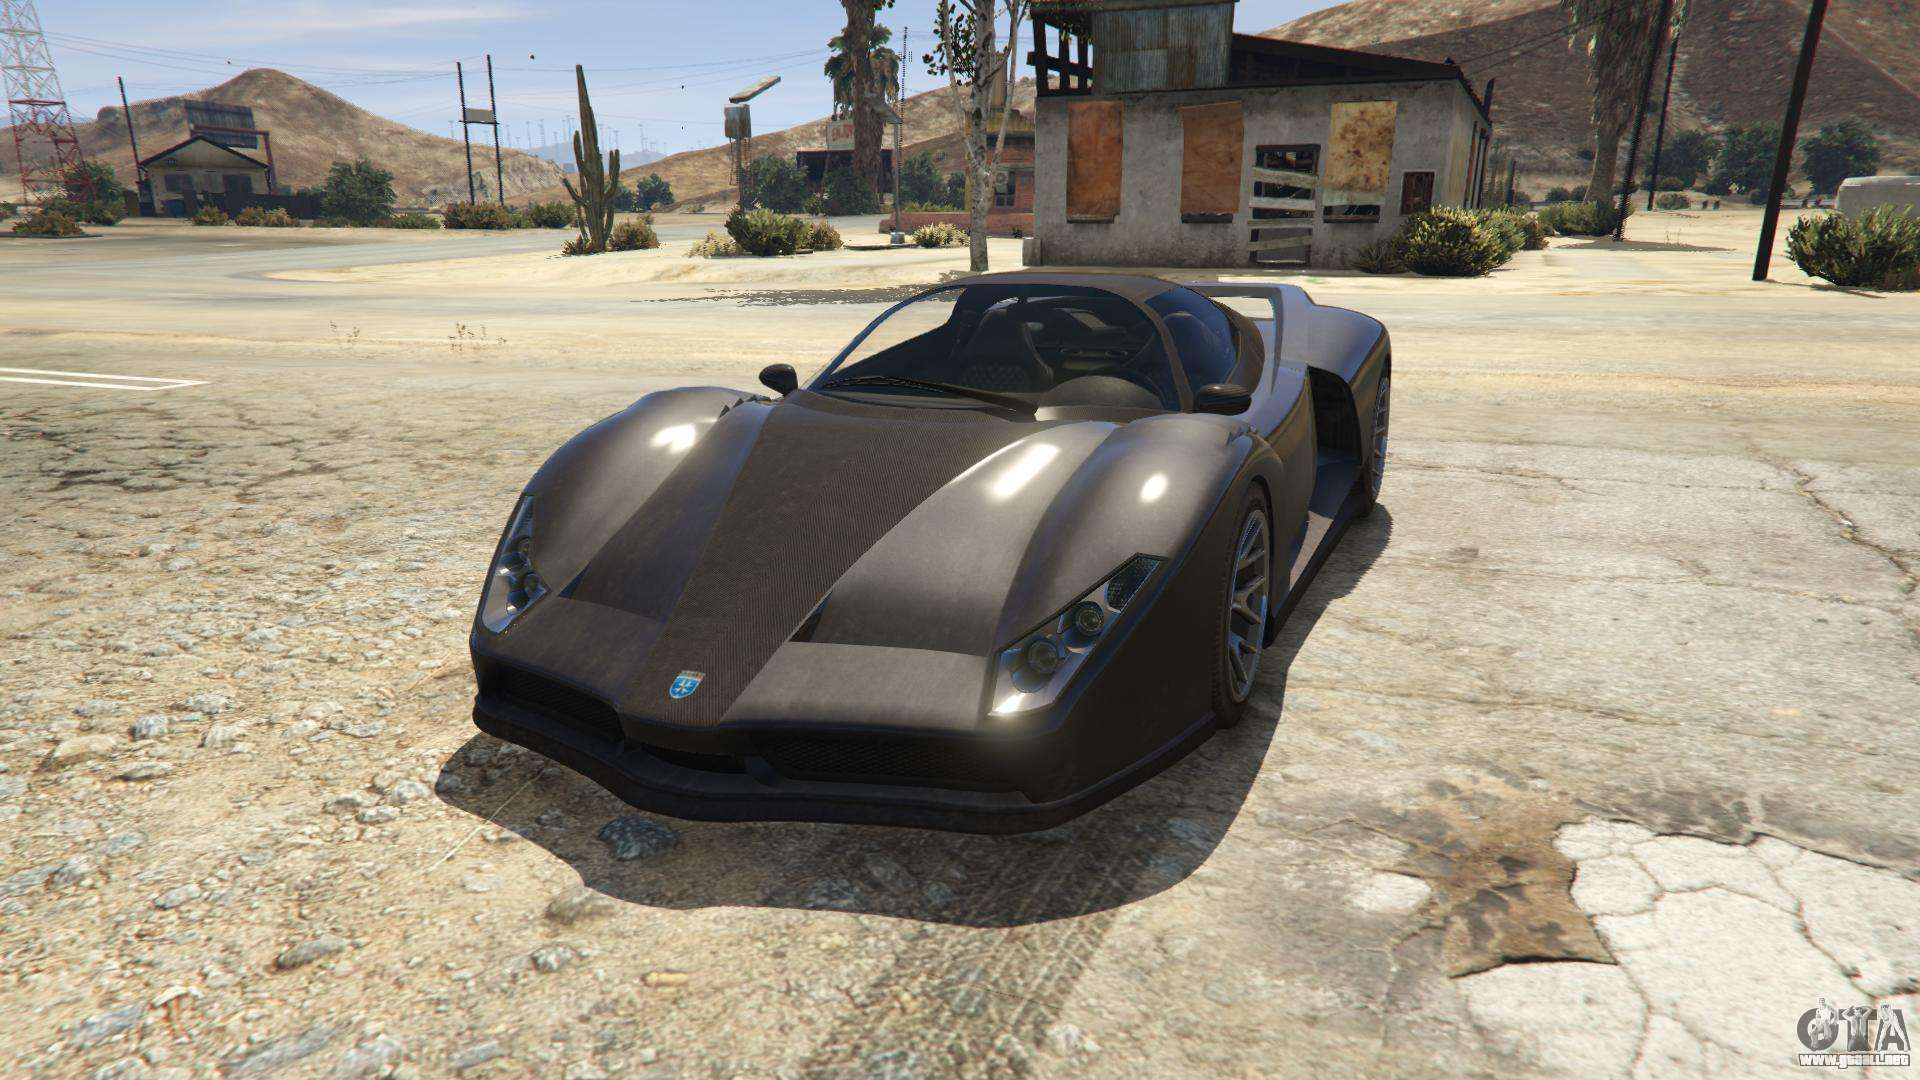 Grotti Cheetah de GTA 5 - vista frontal